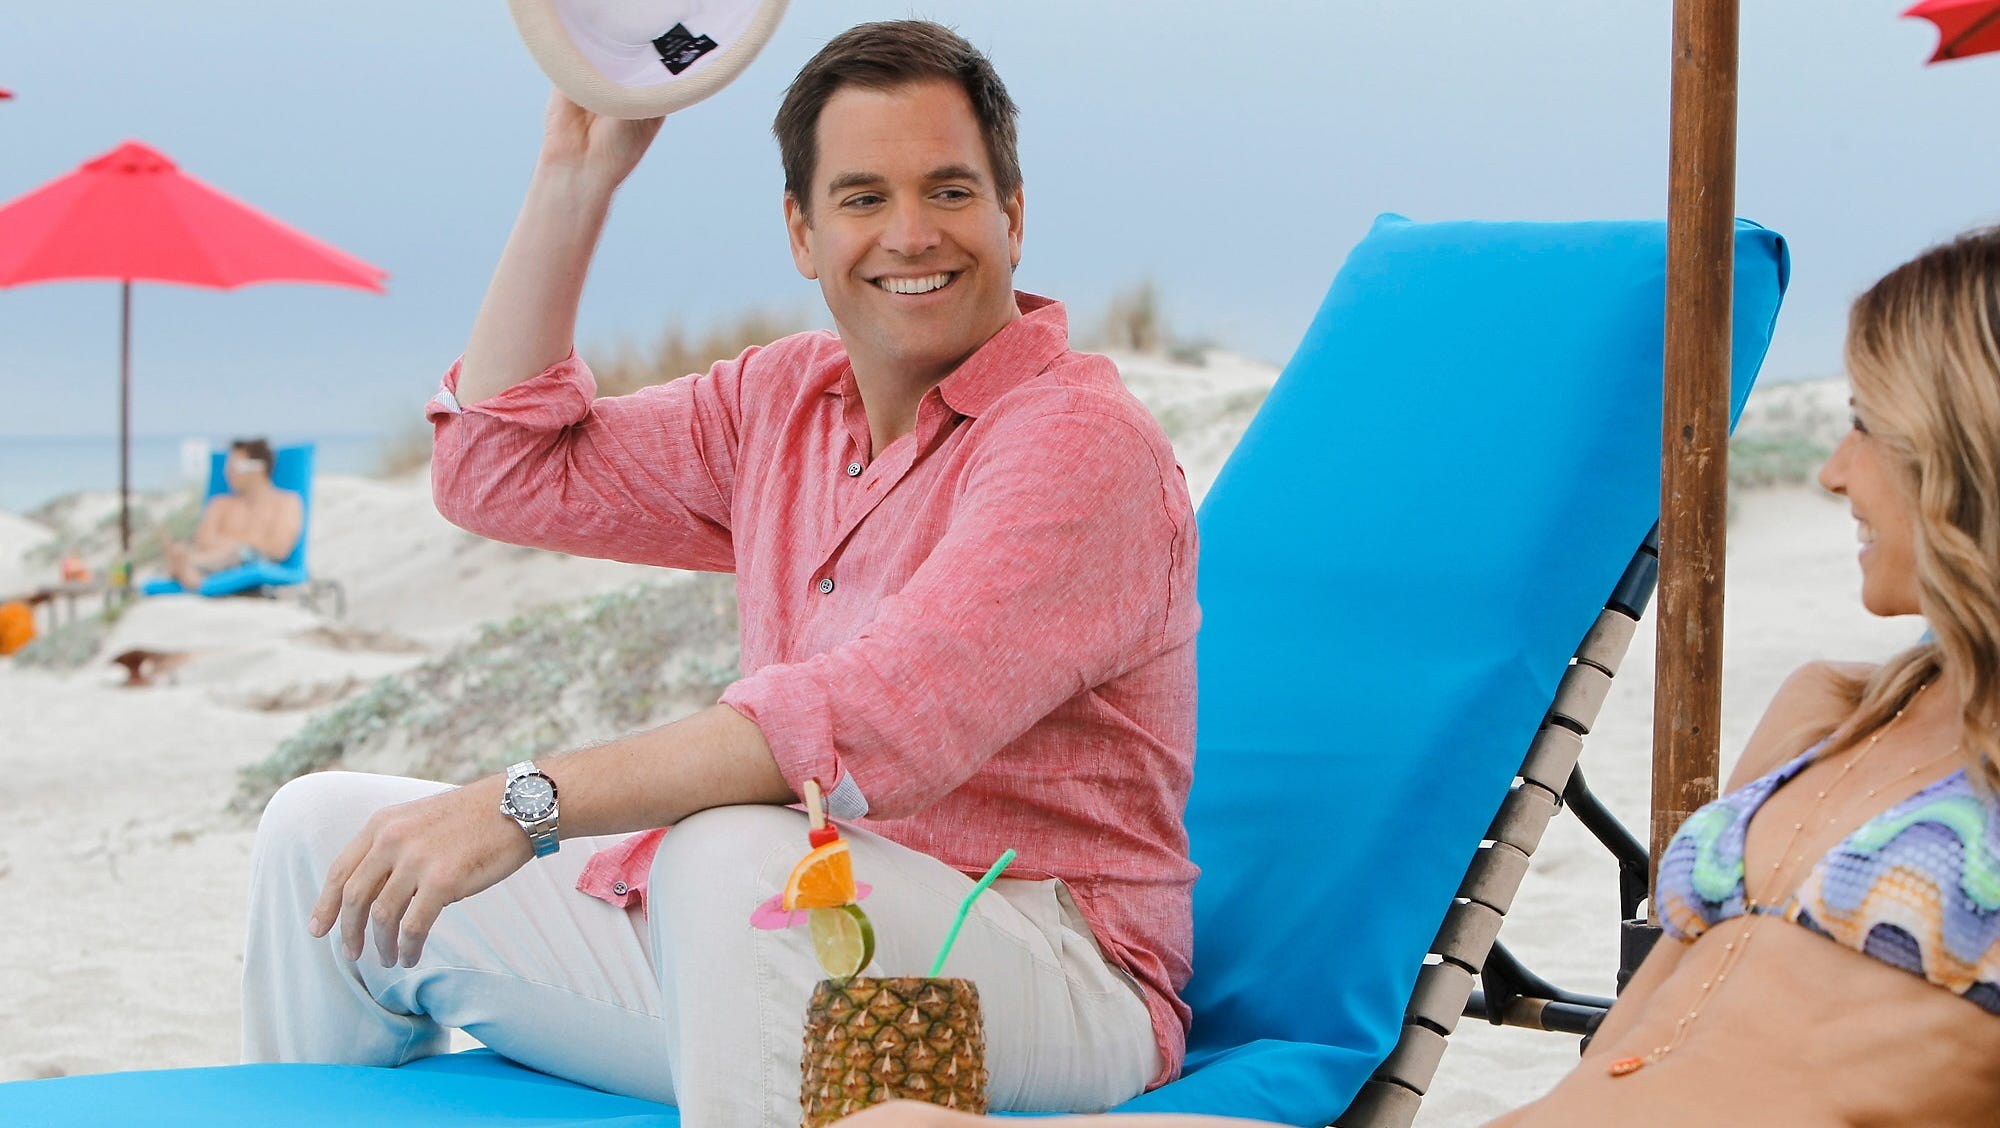 Ncis Star Michael Weatherly Wife Welcome Baby